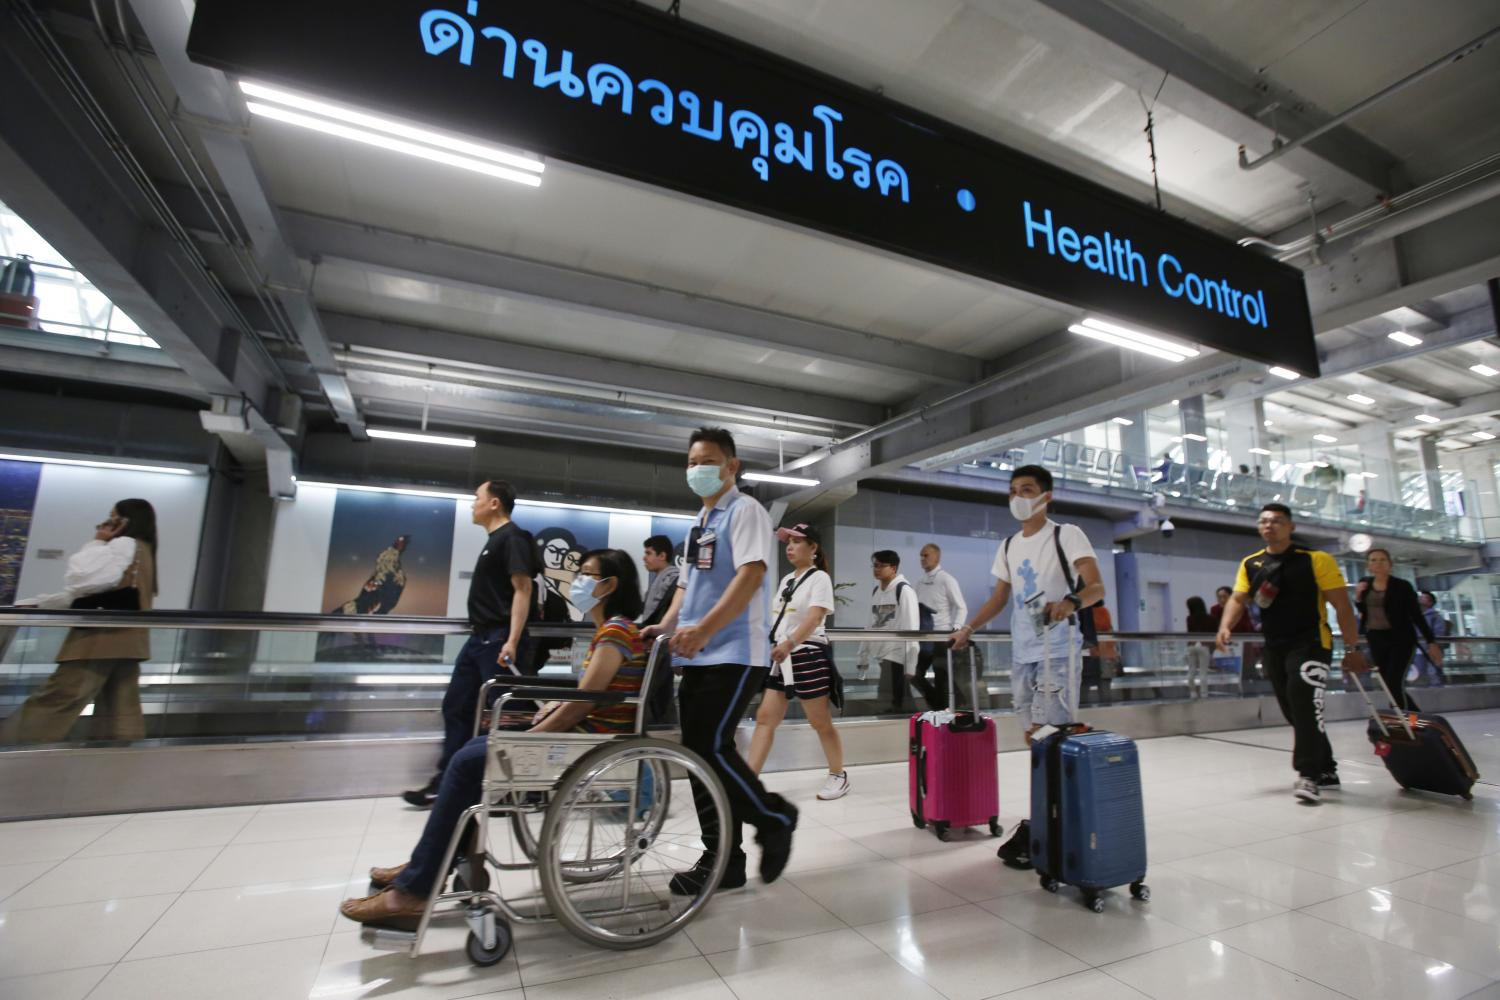 Suvarnabhumi Airport is adopting stricter health measures to monitor travellers arriving from China where a mysterious viral pneumonia has broken out. (Photo by   Pornprom Satrabhaya)